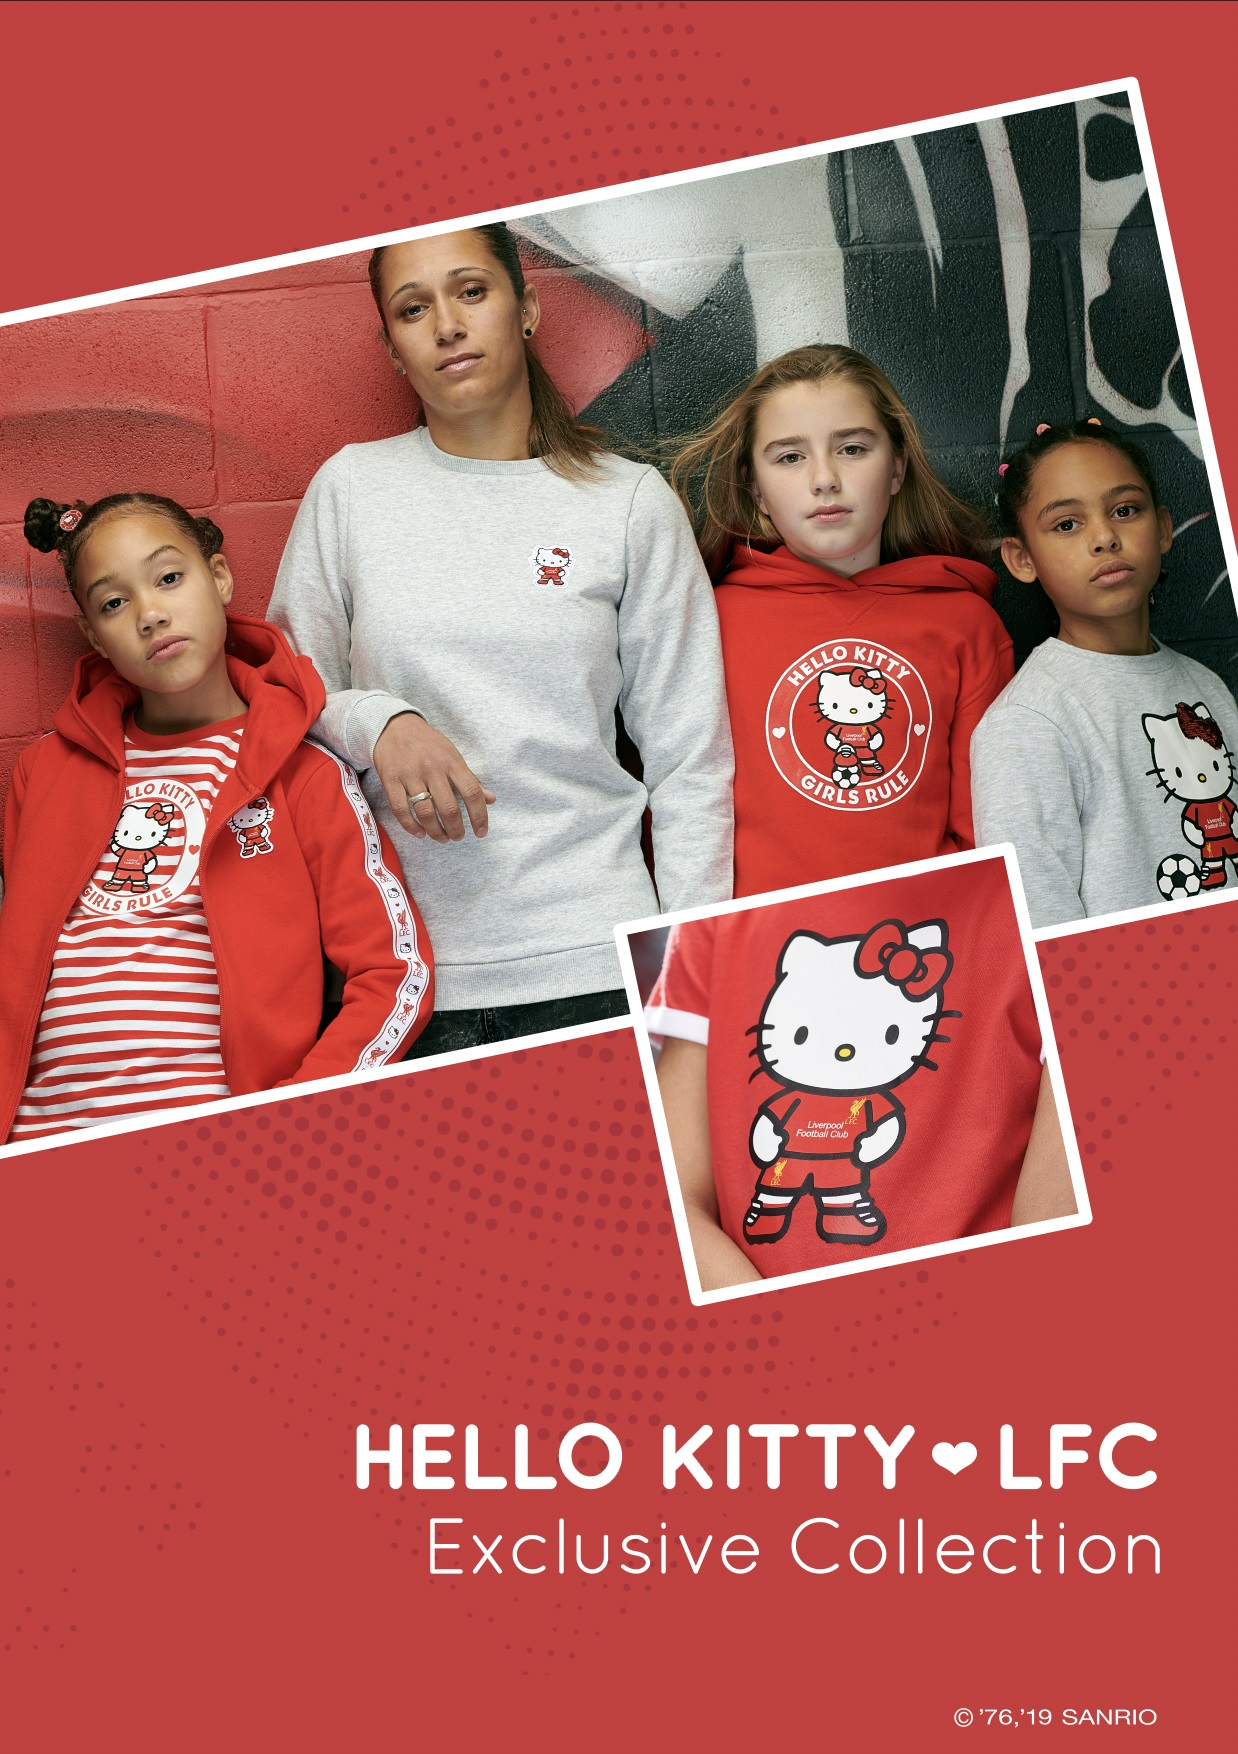 Lfc celebrates 45 years of hello kitty with new range